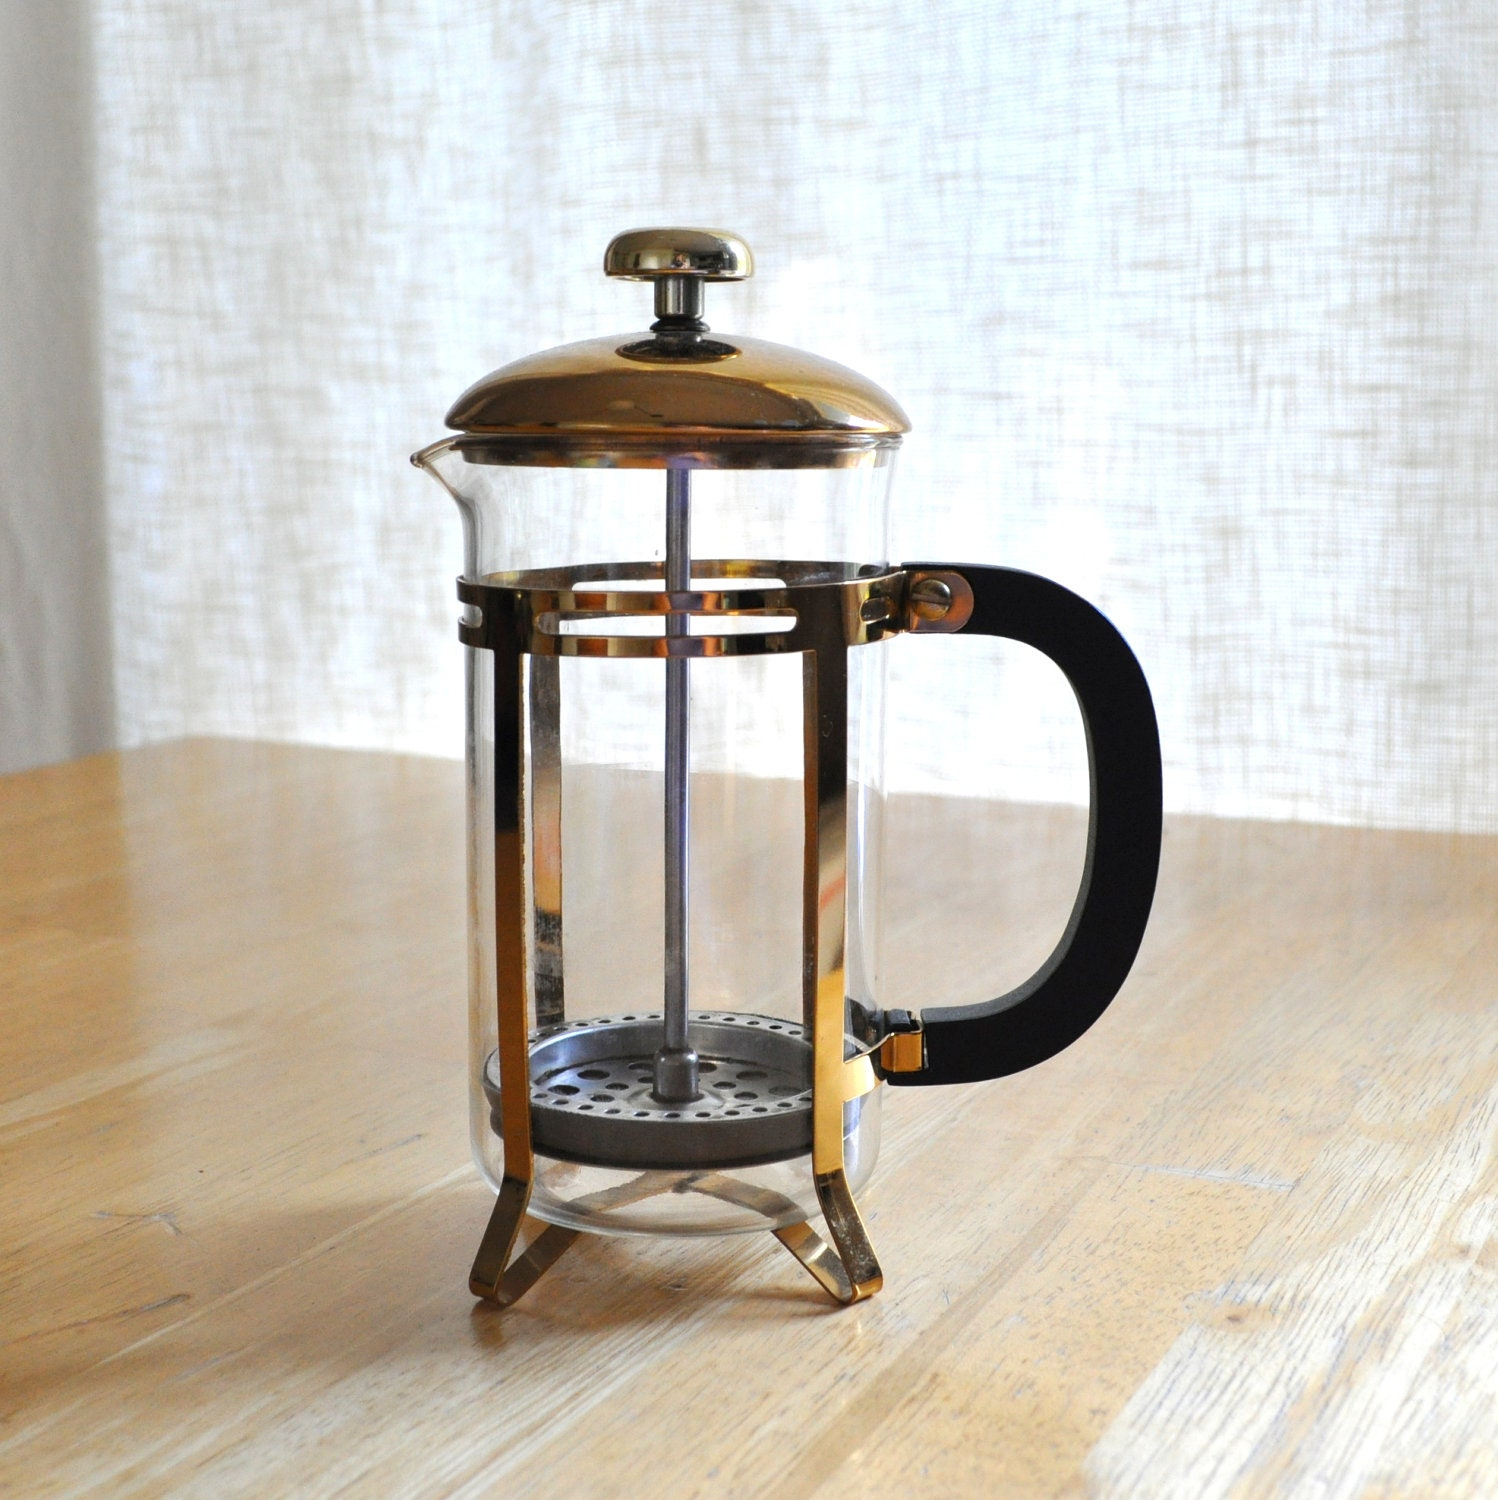 French Press Coffee Maker Images : vintage french press coffee maker with original by thecreekhouse